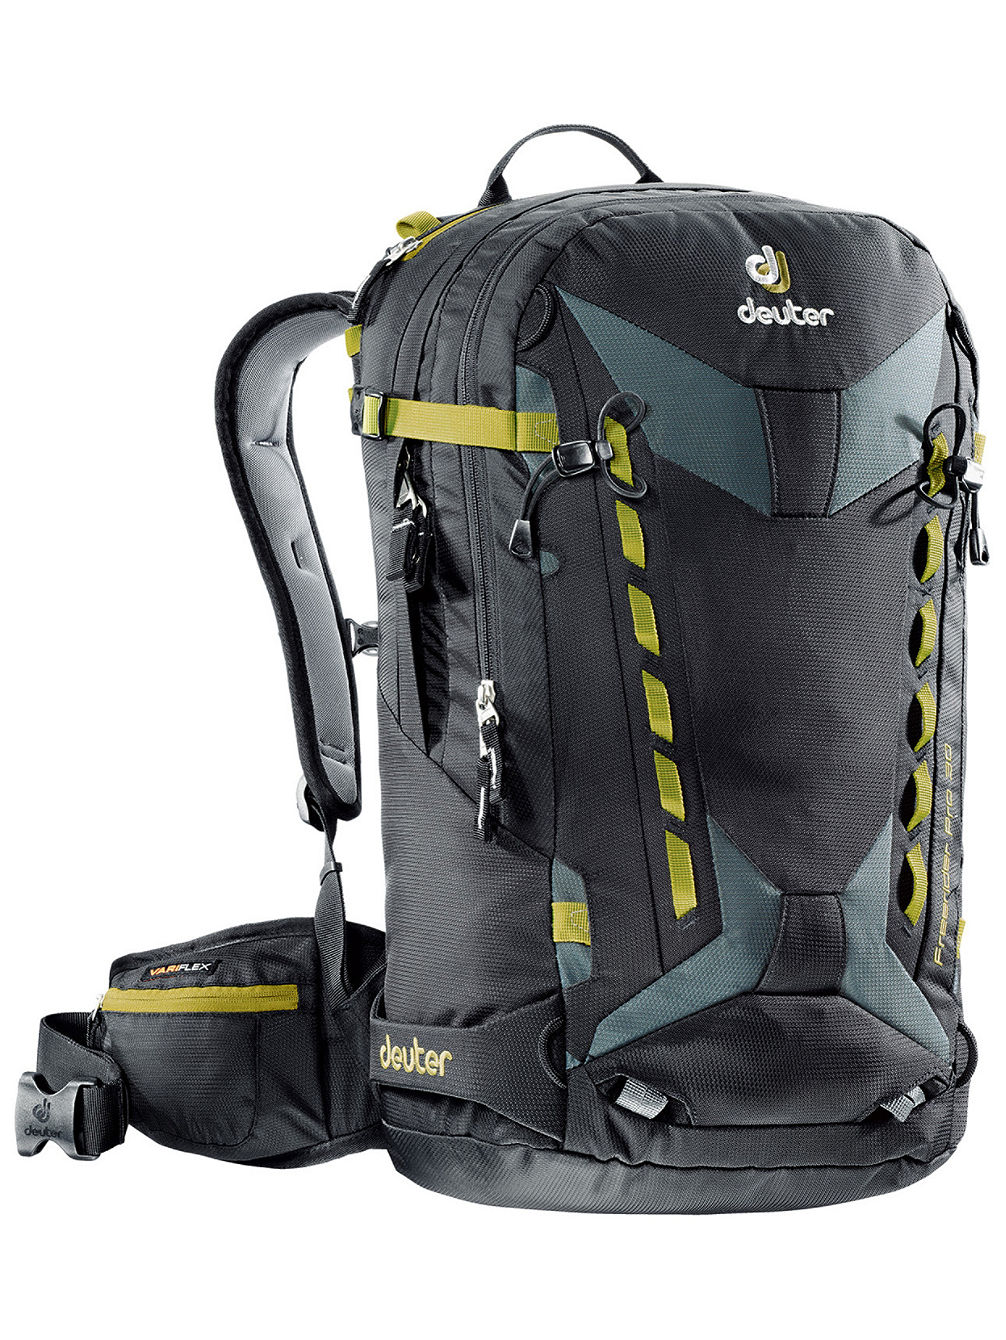 Freerider Pro 30L Backpack